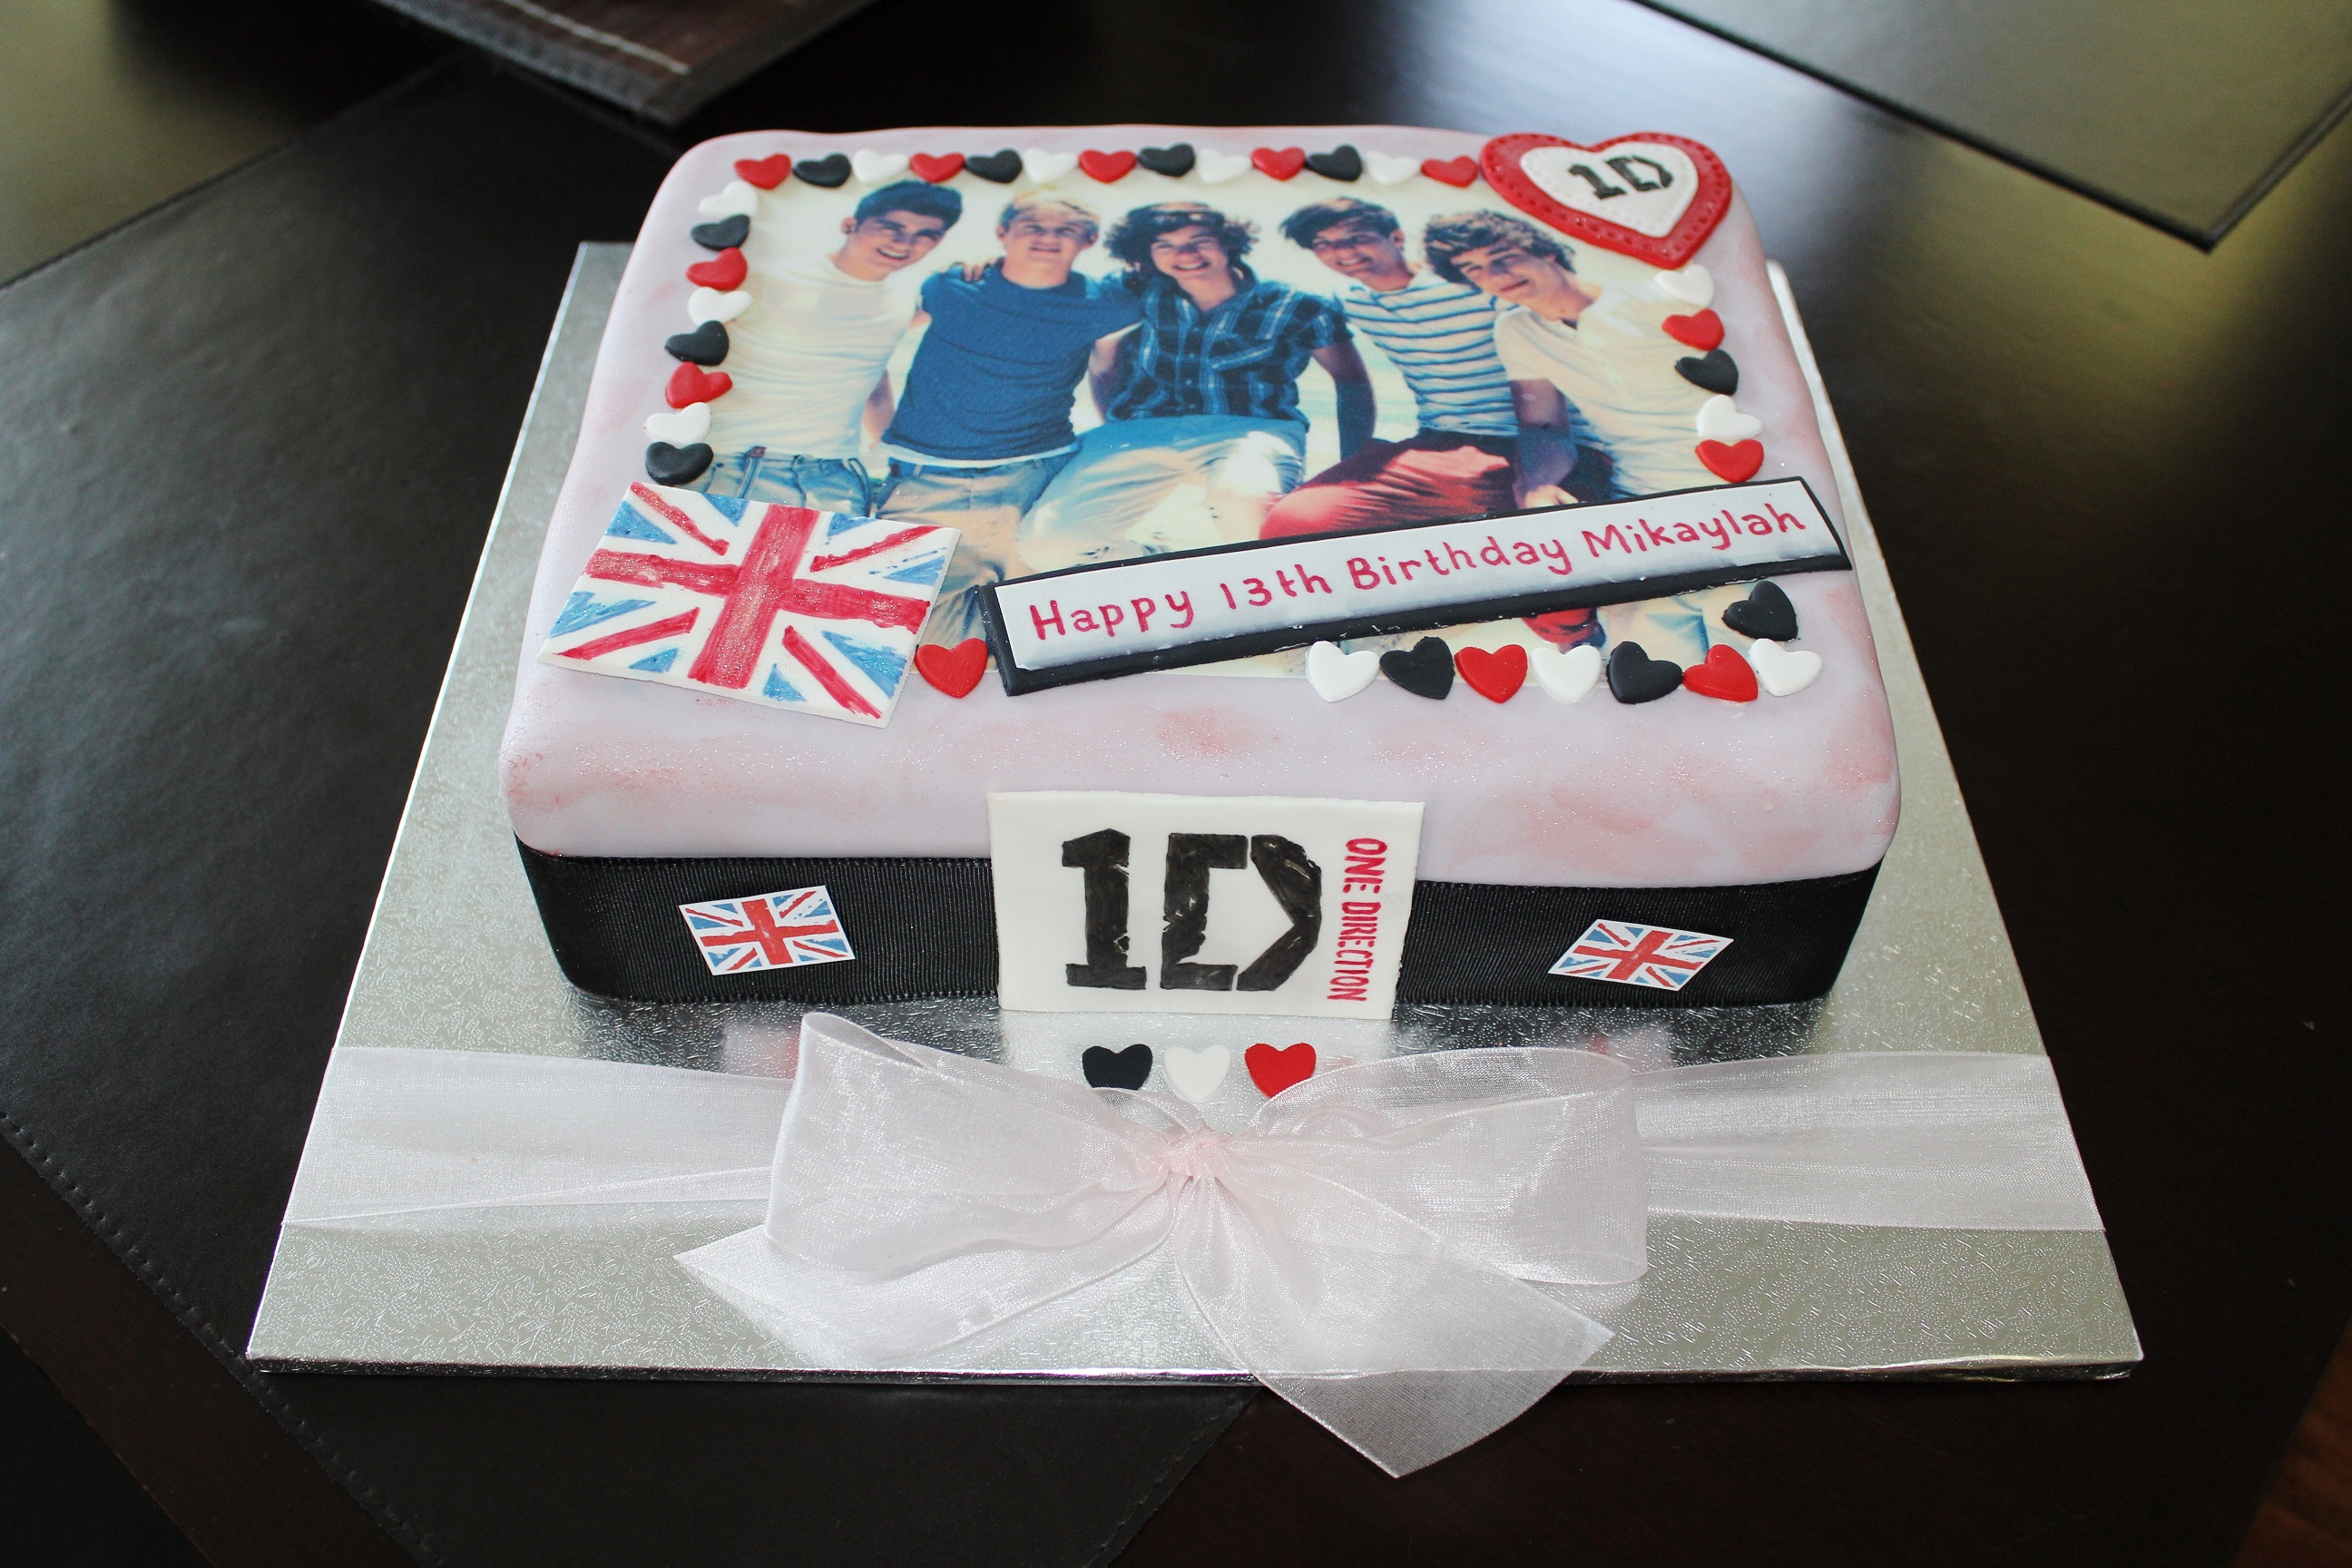 One direction scrapbook ideas - This One Direction Cake Was Done In A Vintage Style It Was Great Fun To Make Almost A Bit Like Scrapbooking I Drew The 1d Logos And Union Jack Onto Gum